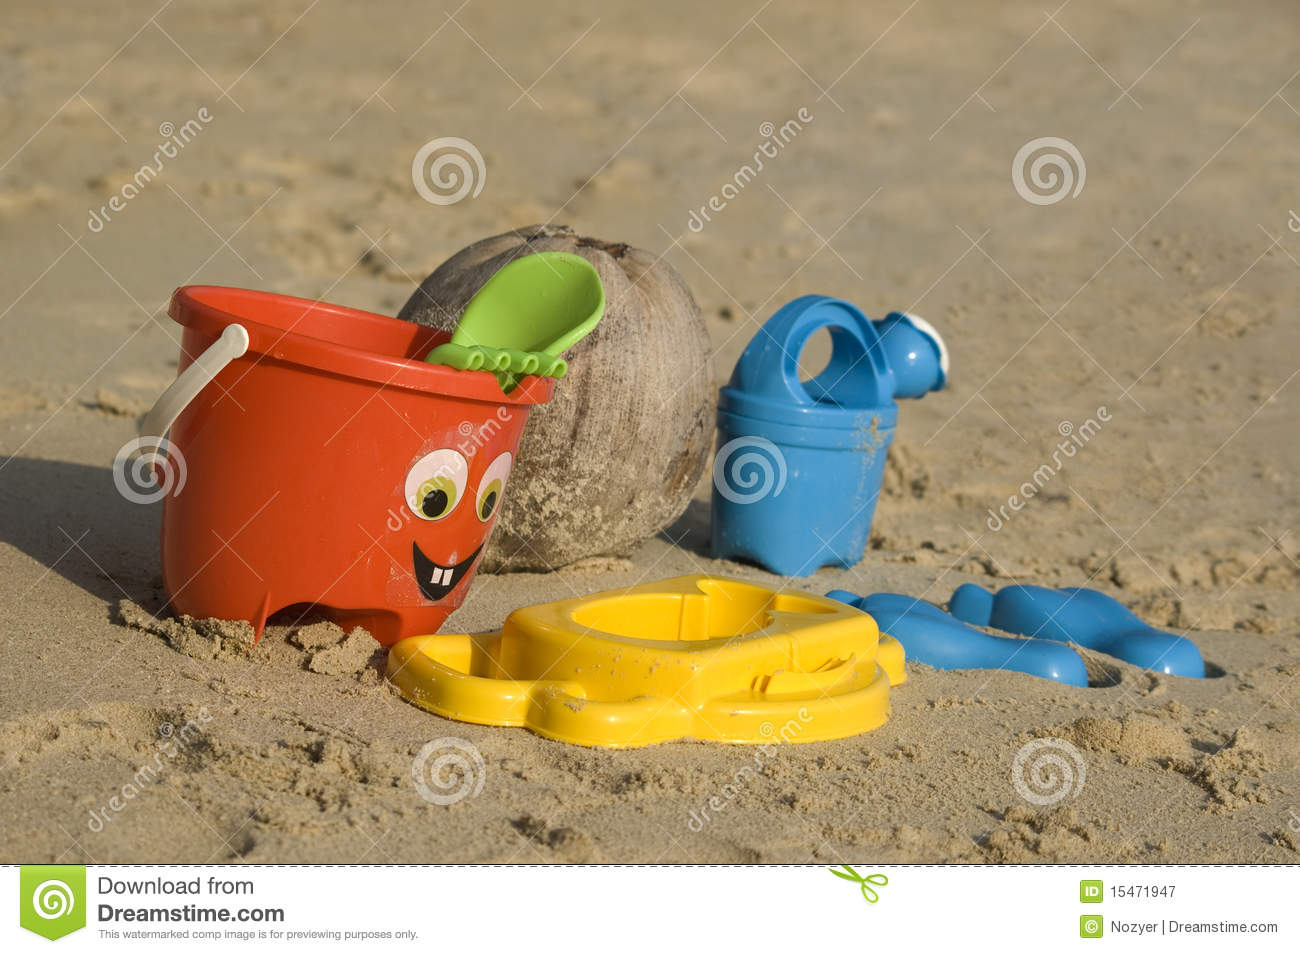 Toys For Beach : Plastic kids toys on the sand beach stock image